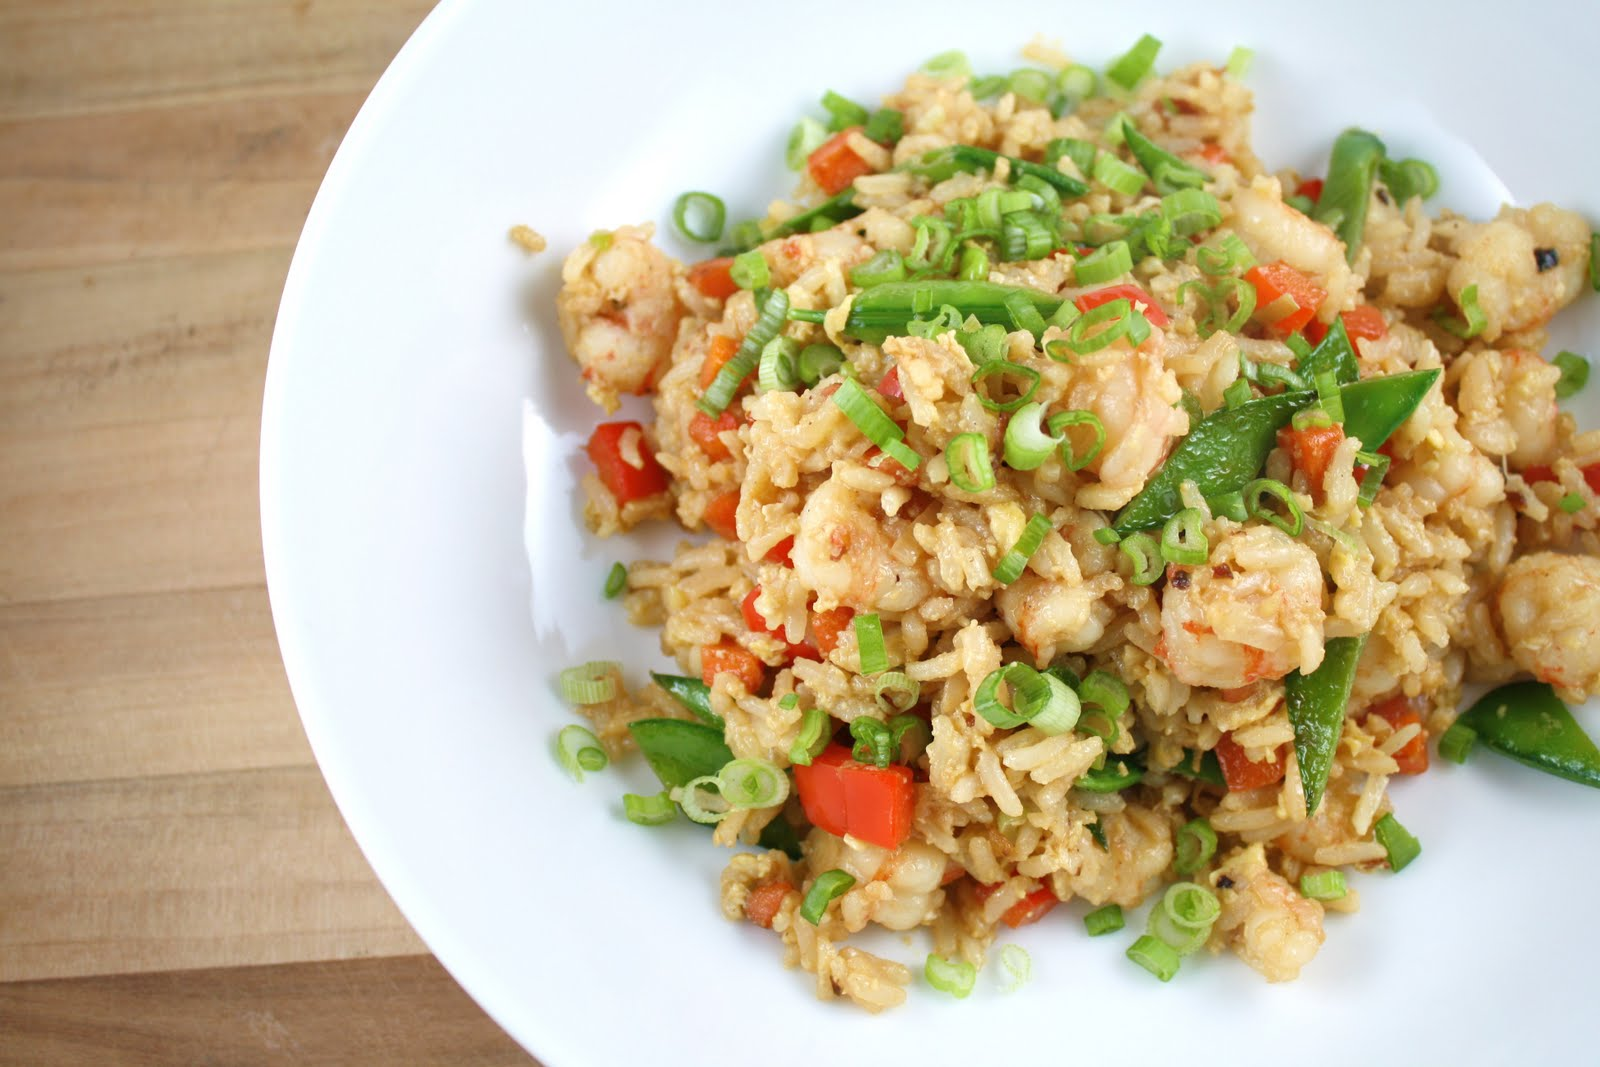 Living on Pure Land: Rock shrimp fried rice